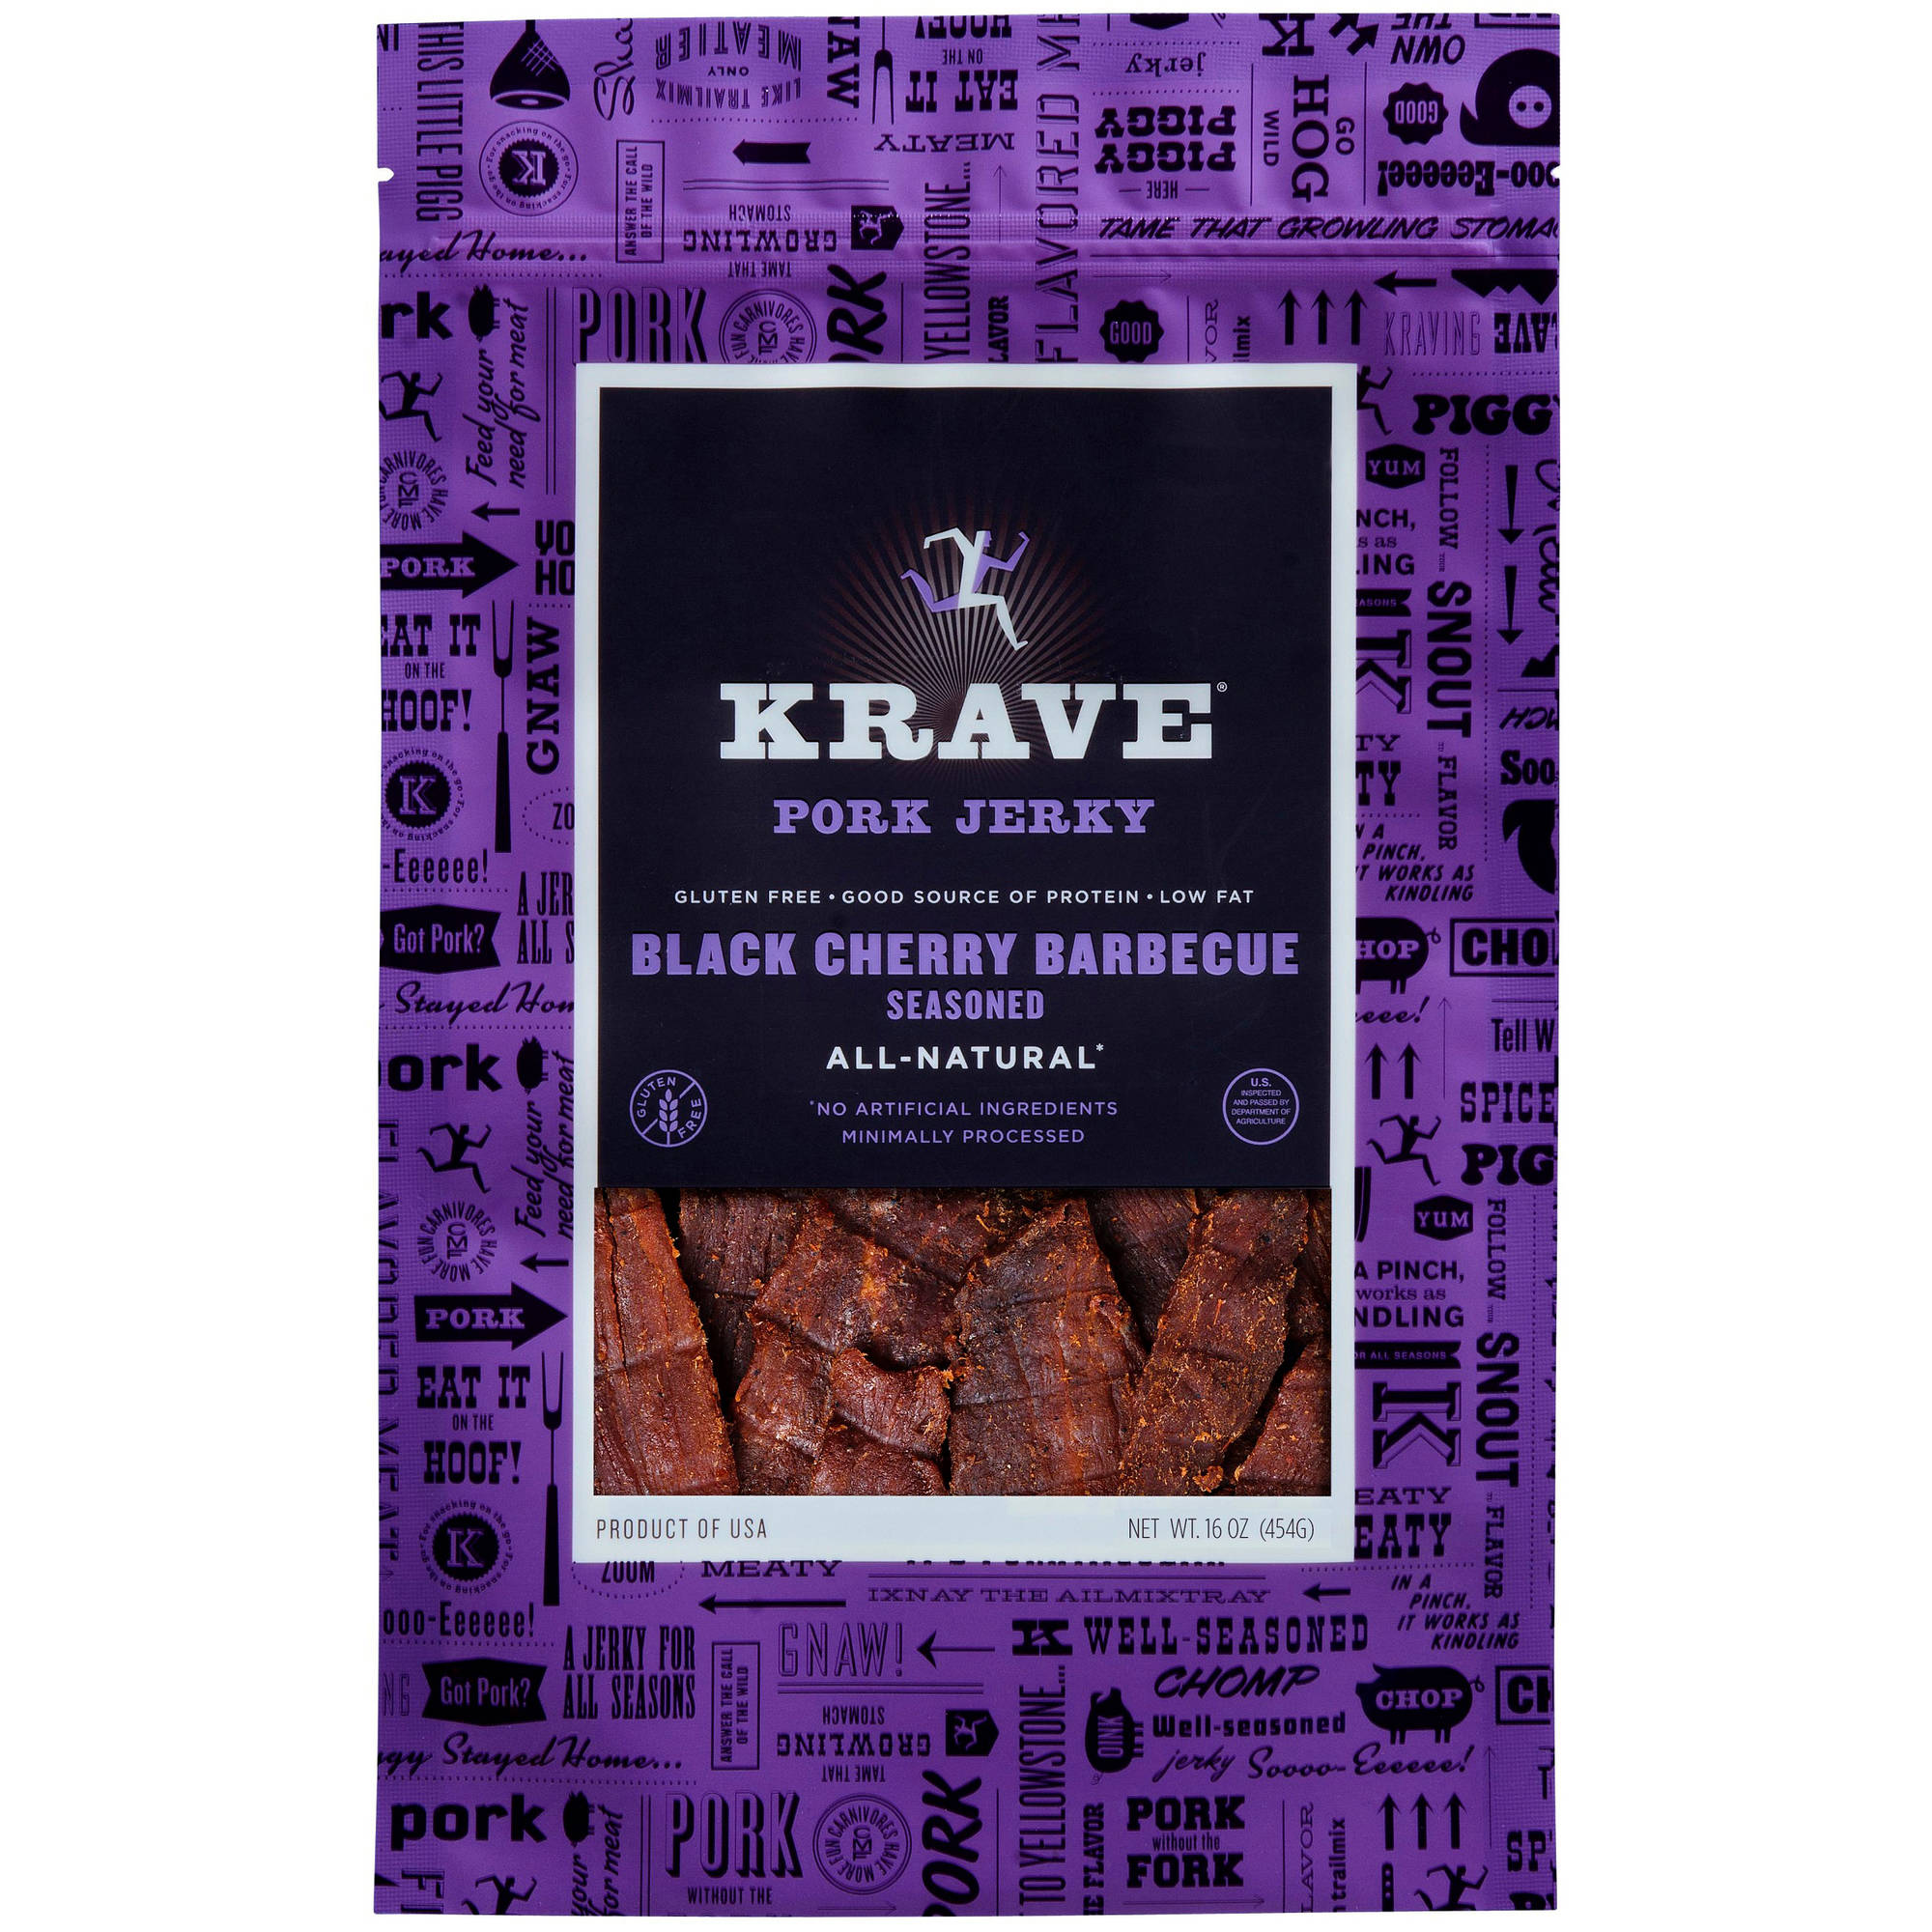 Krave Black Cherry Barbecue Seasoned Pork Jerky, 16 oz - Online Only